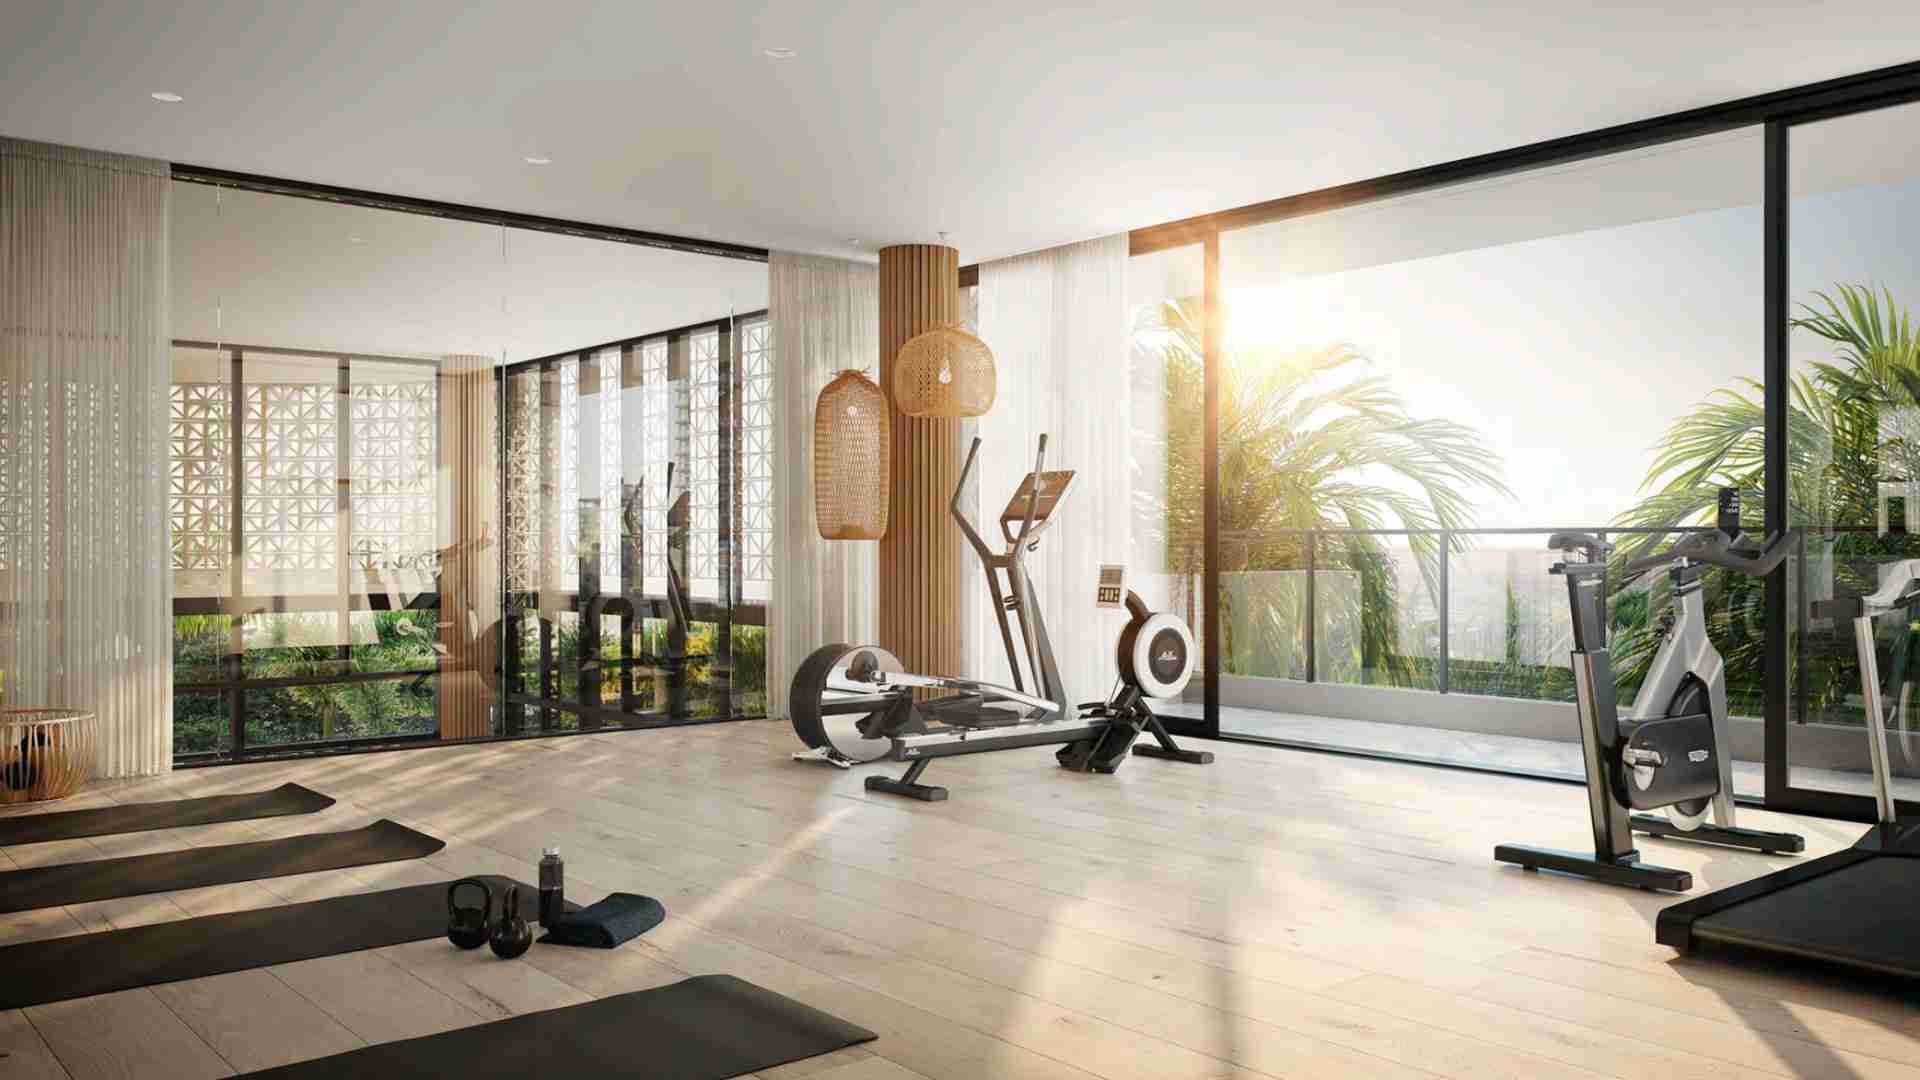 gym studio with floor to ceiling glass windows